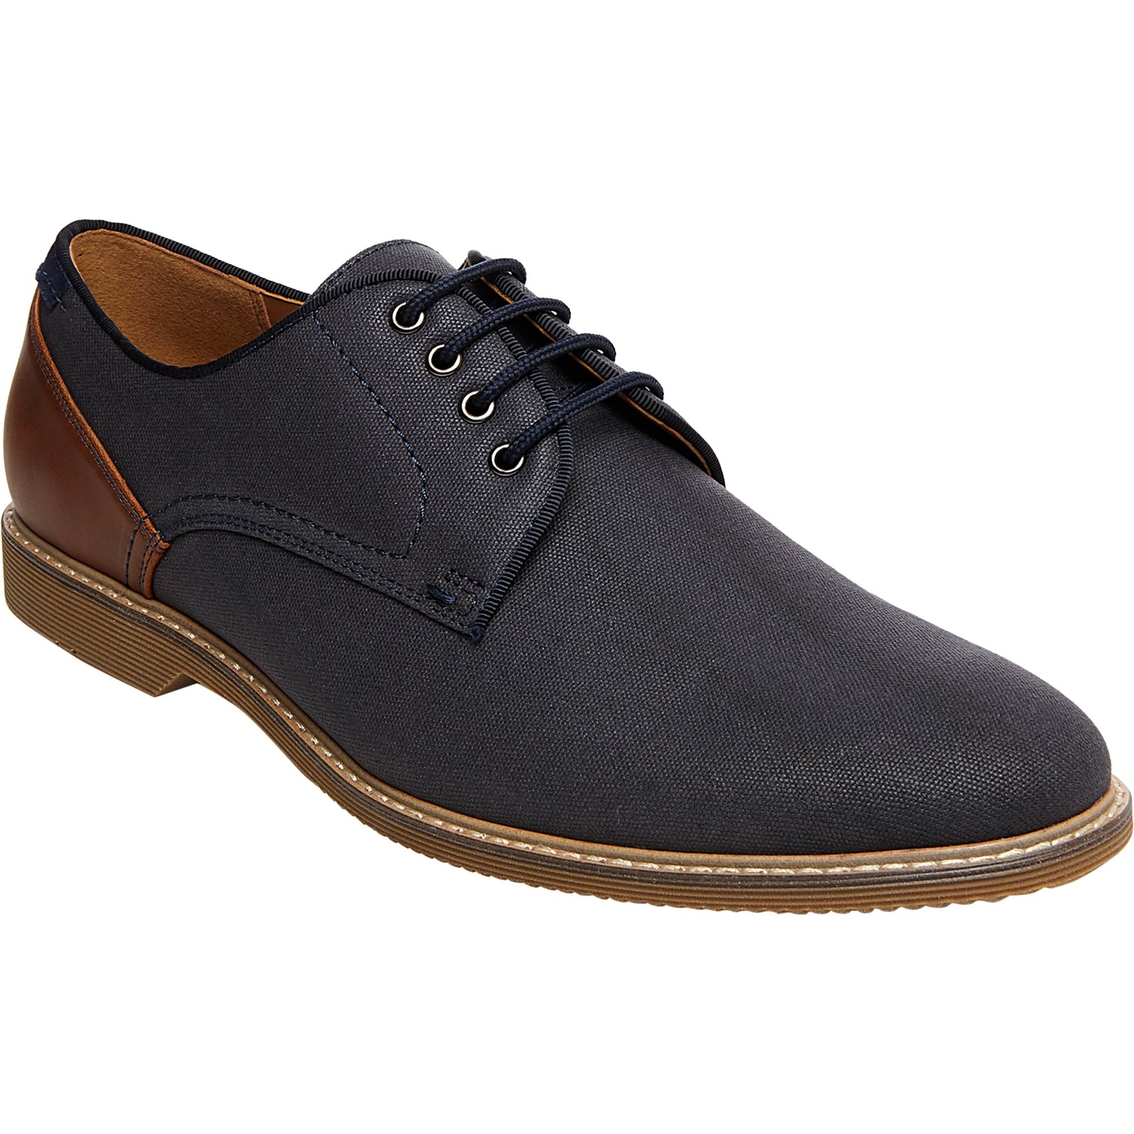 5cf7774be83 Steve Madden Men's Newstead Oxford | Casuals | Back To School Shop ...